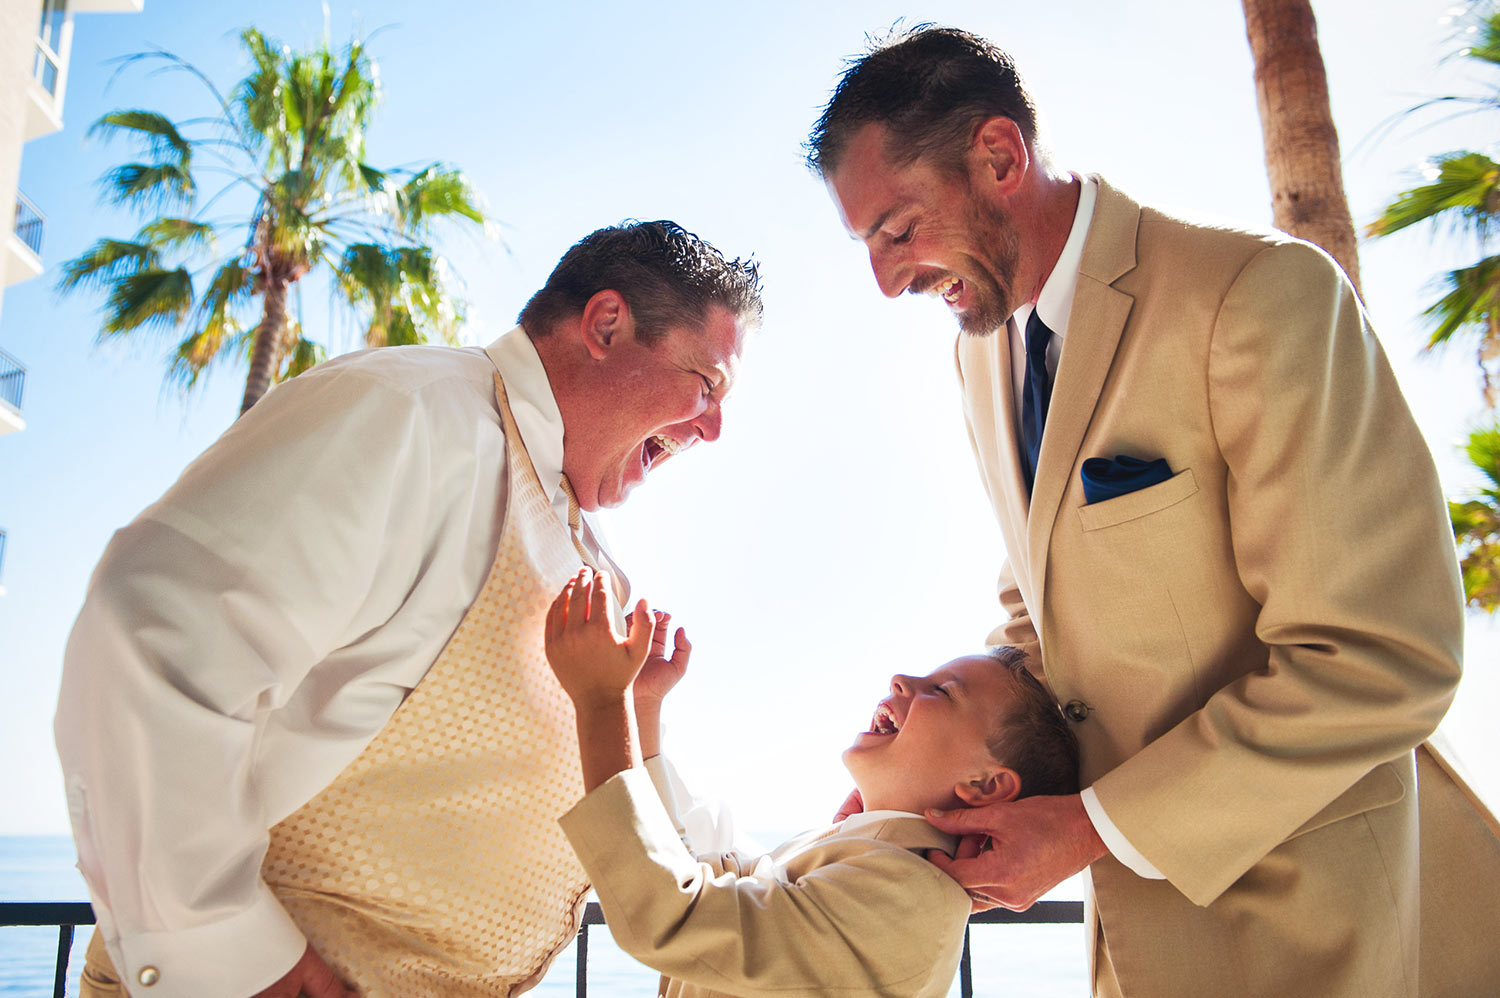 Great wedding moment at Surf and Sand Resort in Laguna Beach